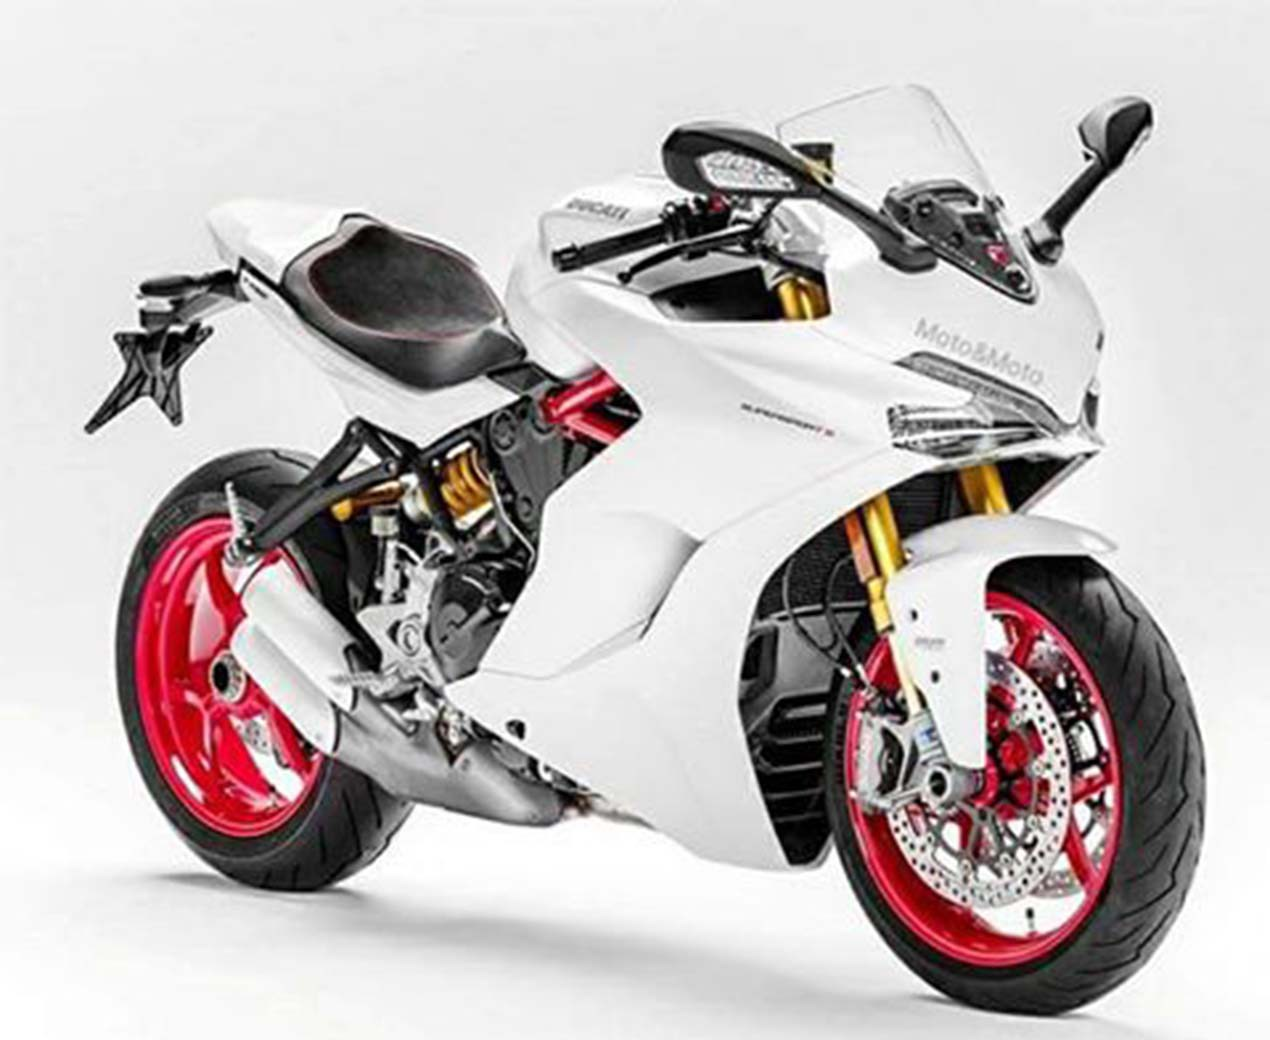 2017 Ducati SuperSport INTERMOT leak 01